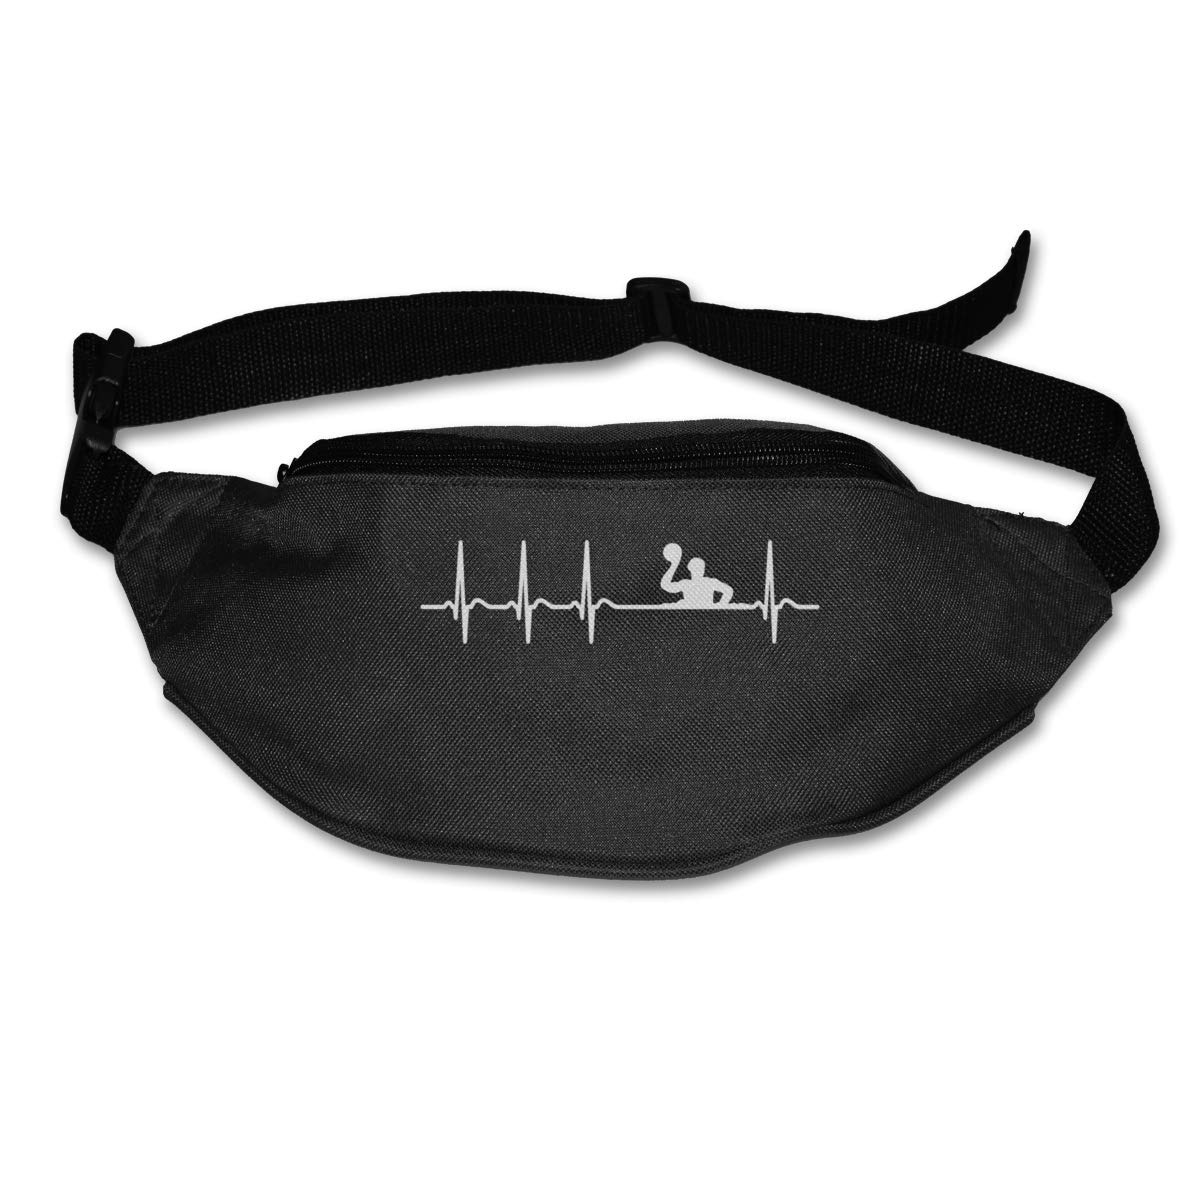 Heartbeat Water Polo Sport Waist Pack Fanny Pack Adjustable For Hike